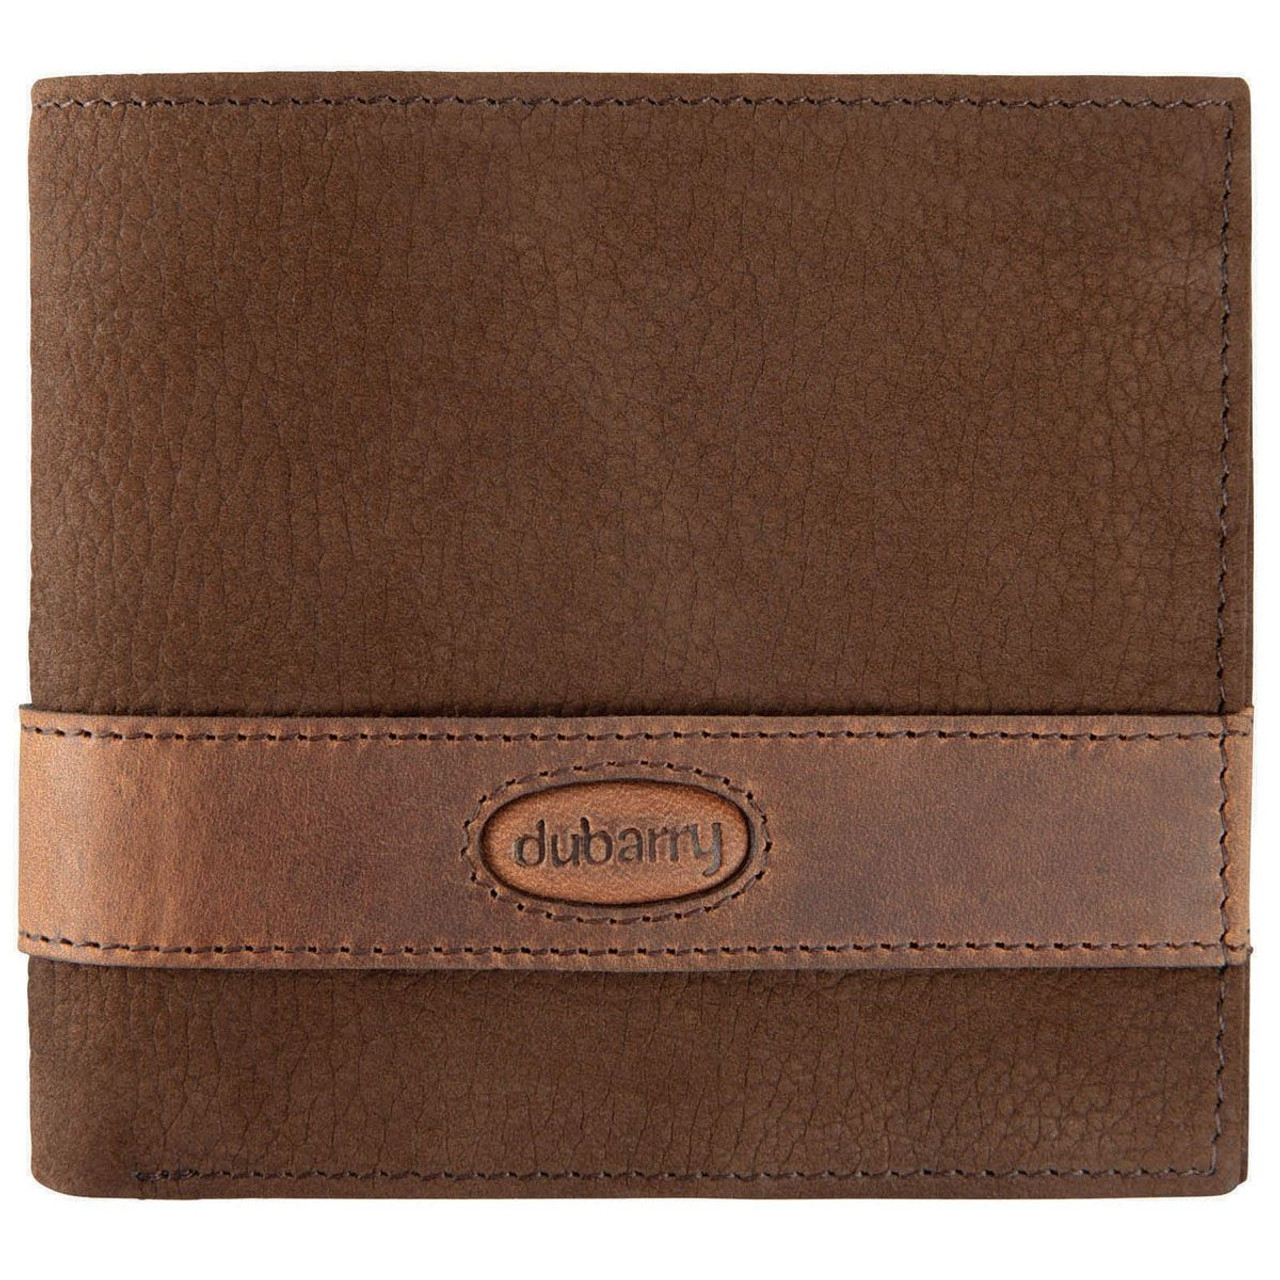 Dubarry Grafton Mens Leather Wallet in Walnut